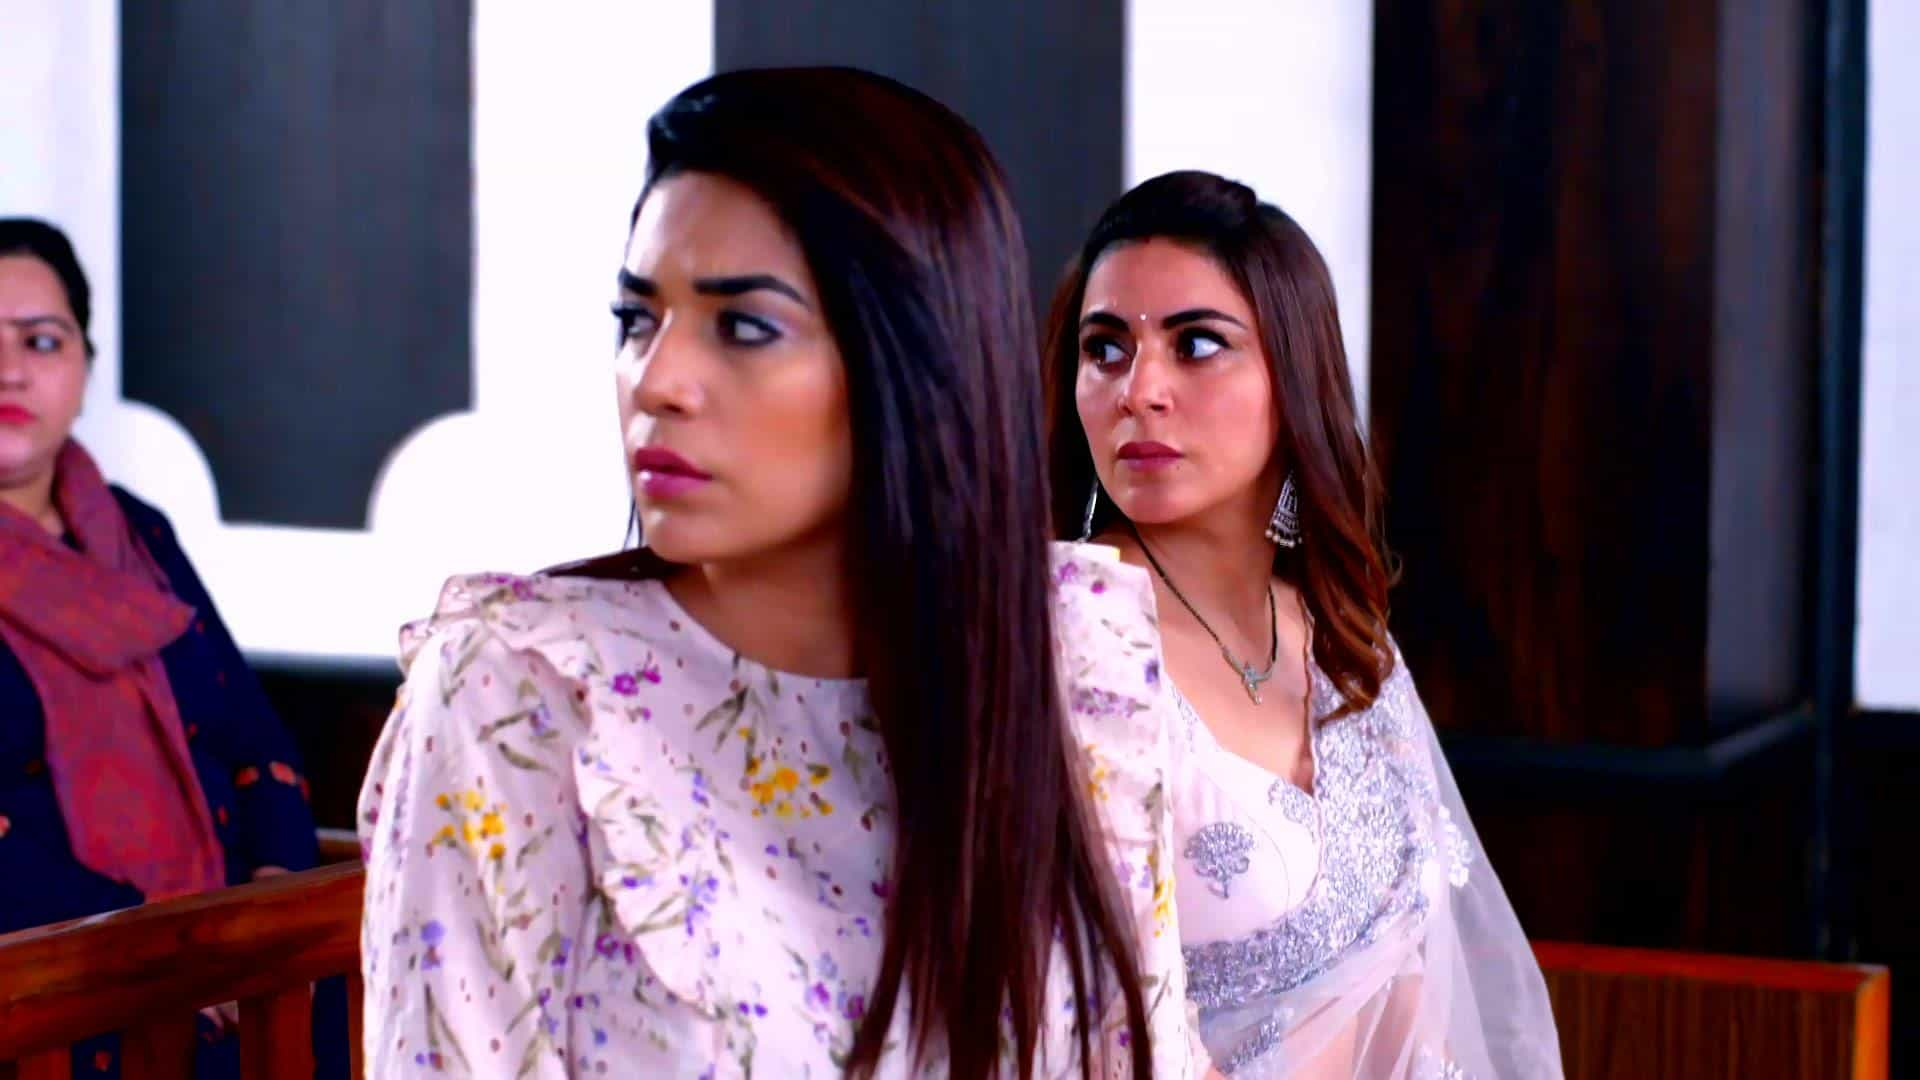 Kundali Bhagya 24 June 2021 Spoiler: The hotel staff's arrival at the court stuns everyone